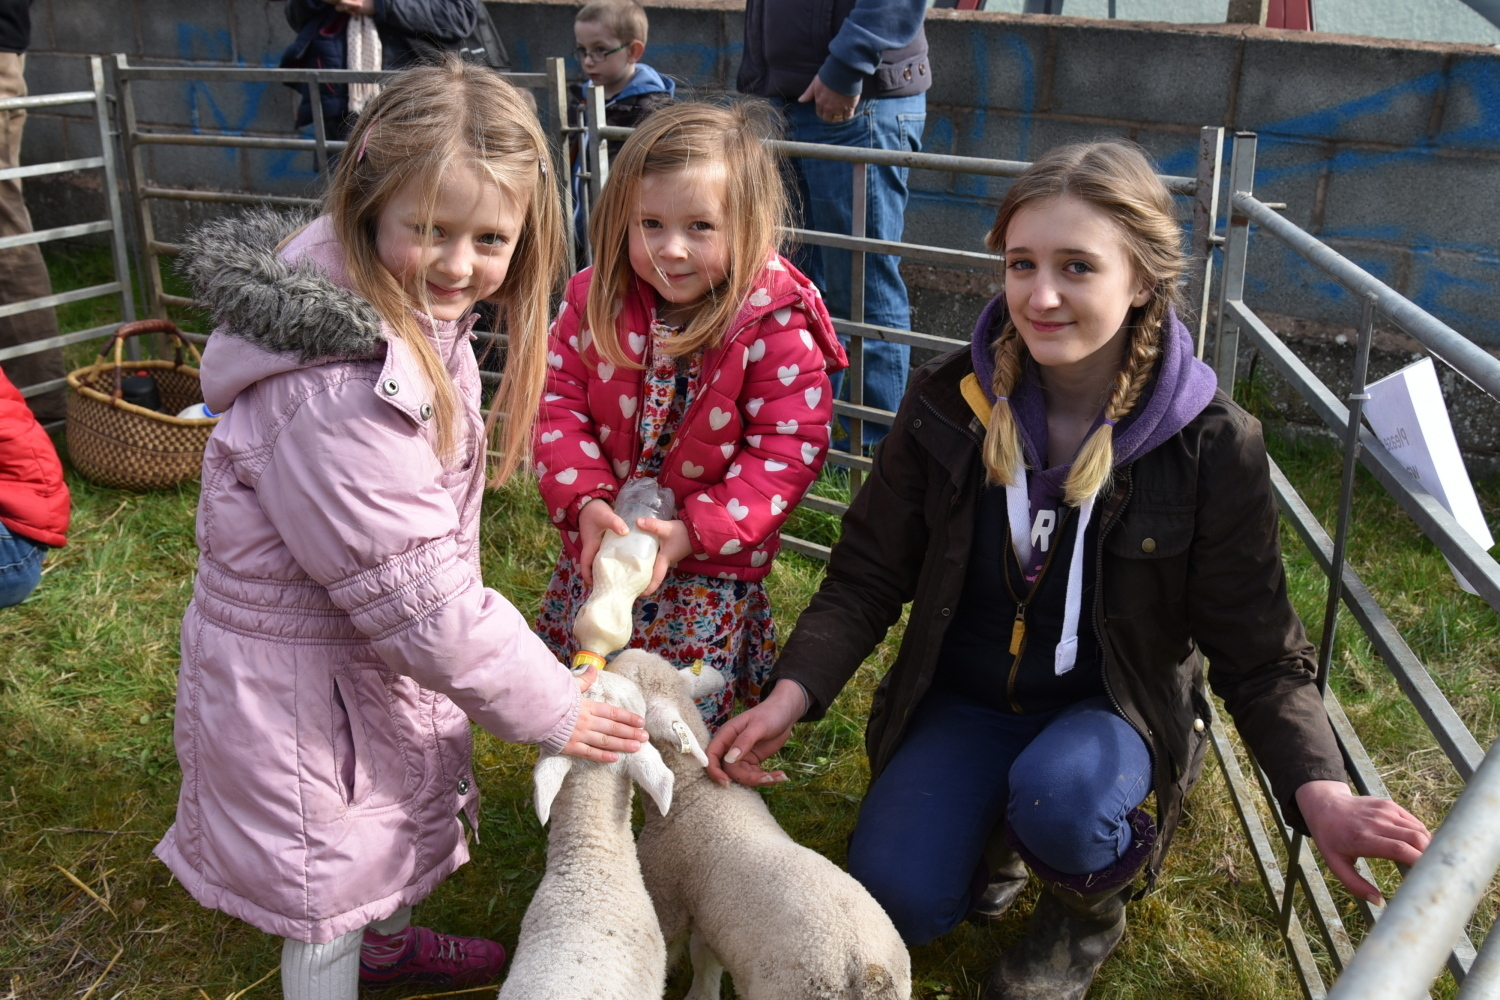 Children feeding lambs at Presteigne food market